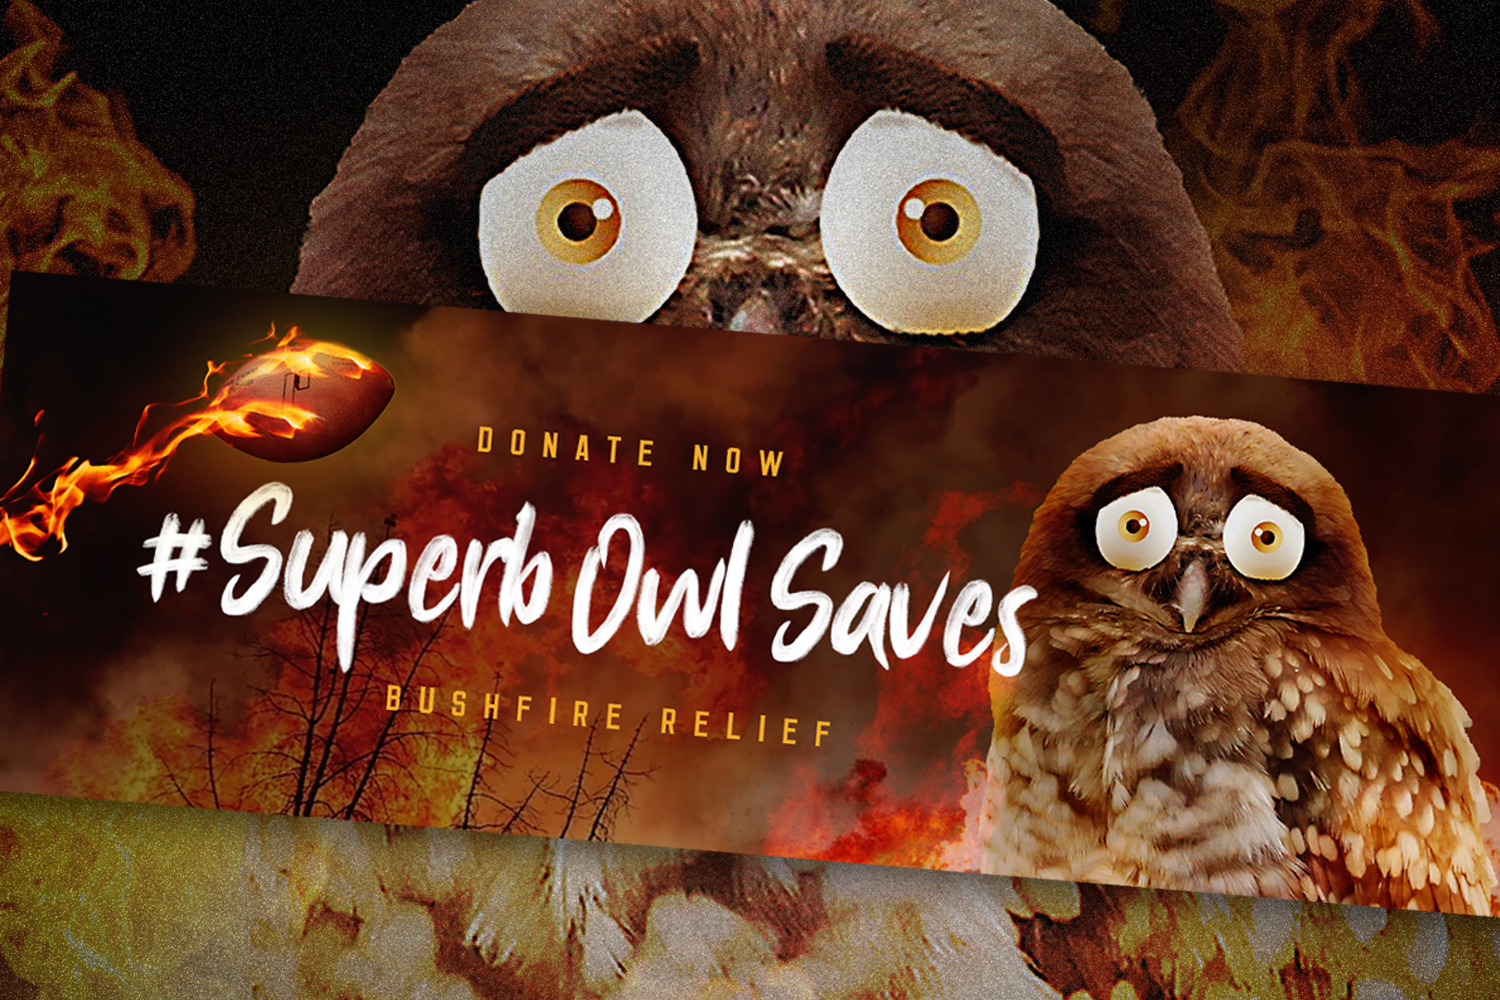 Agency Brief: Owl to swoop into Super Bowl for Australian wildlife relief